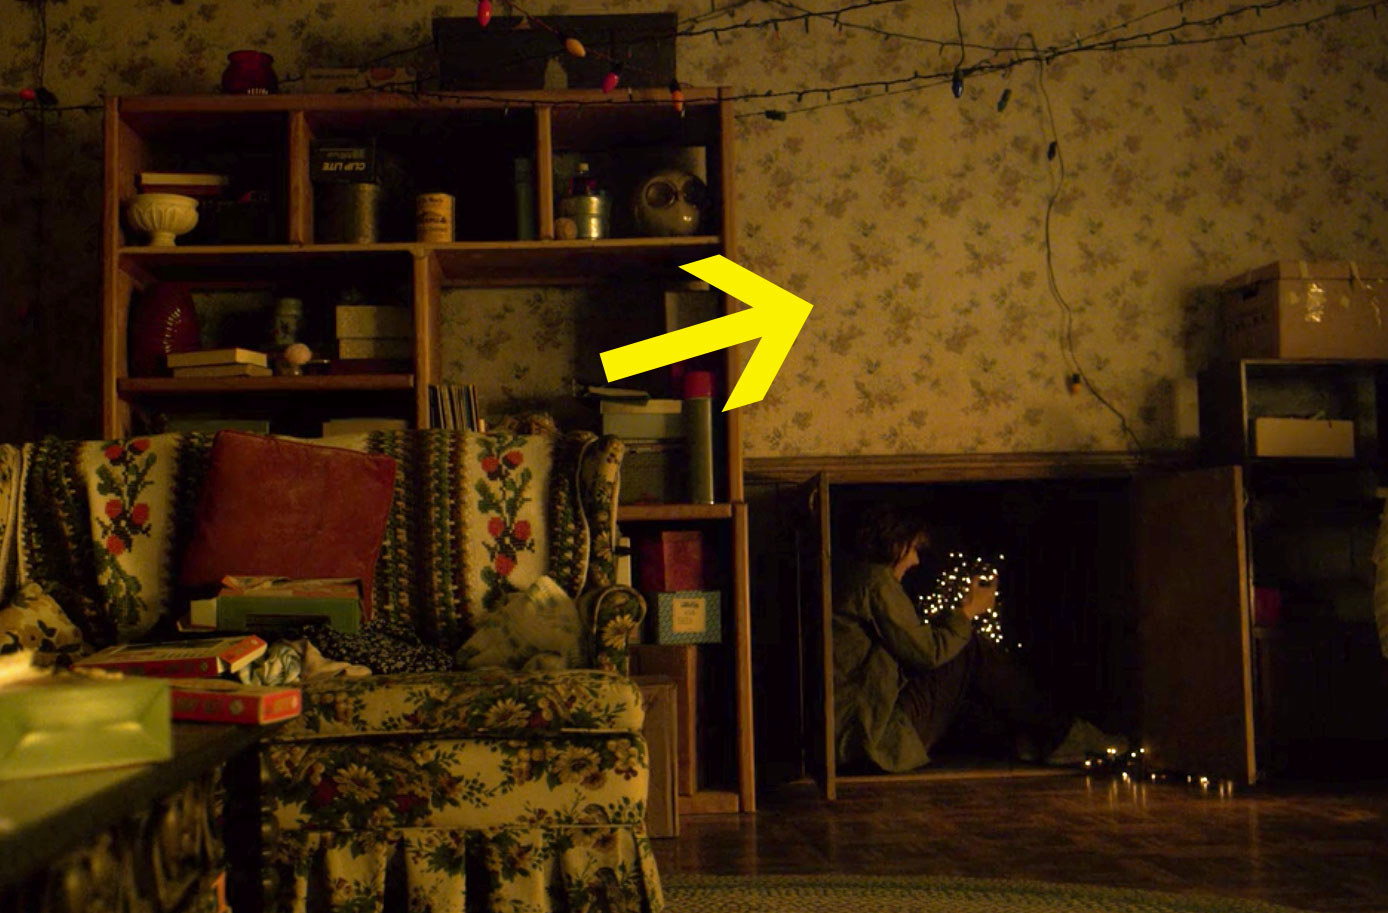 And they even got the exact wallpaper print from the Byers' living room to recreate that iconic set.